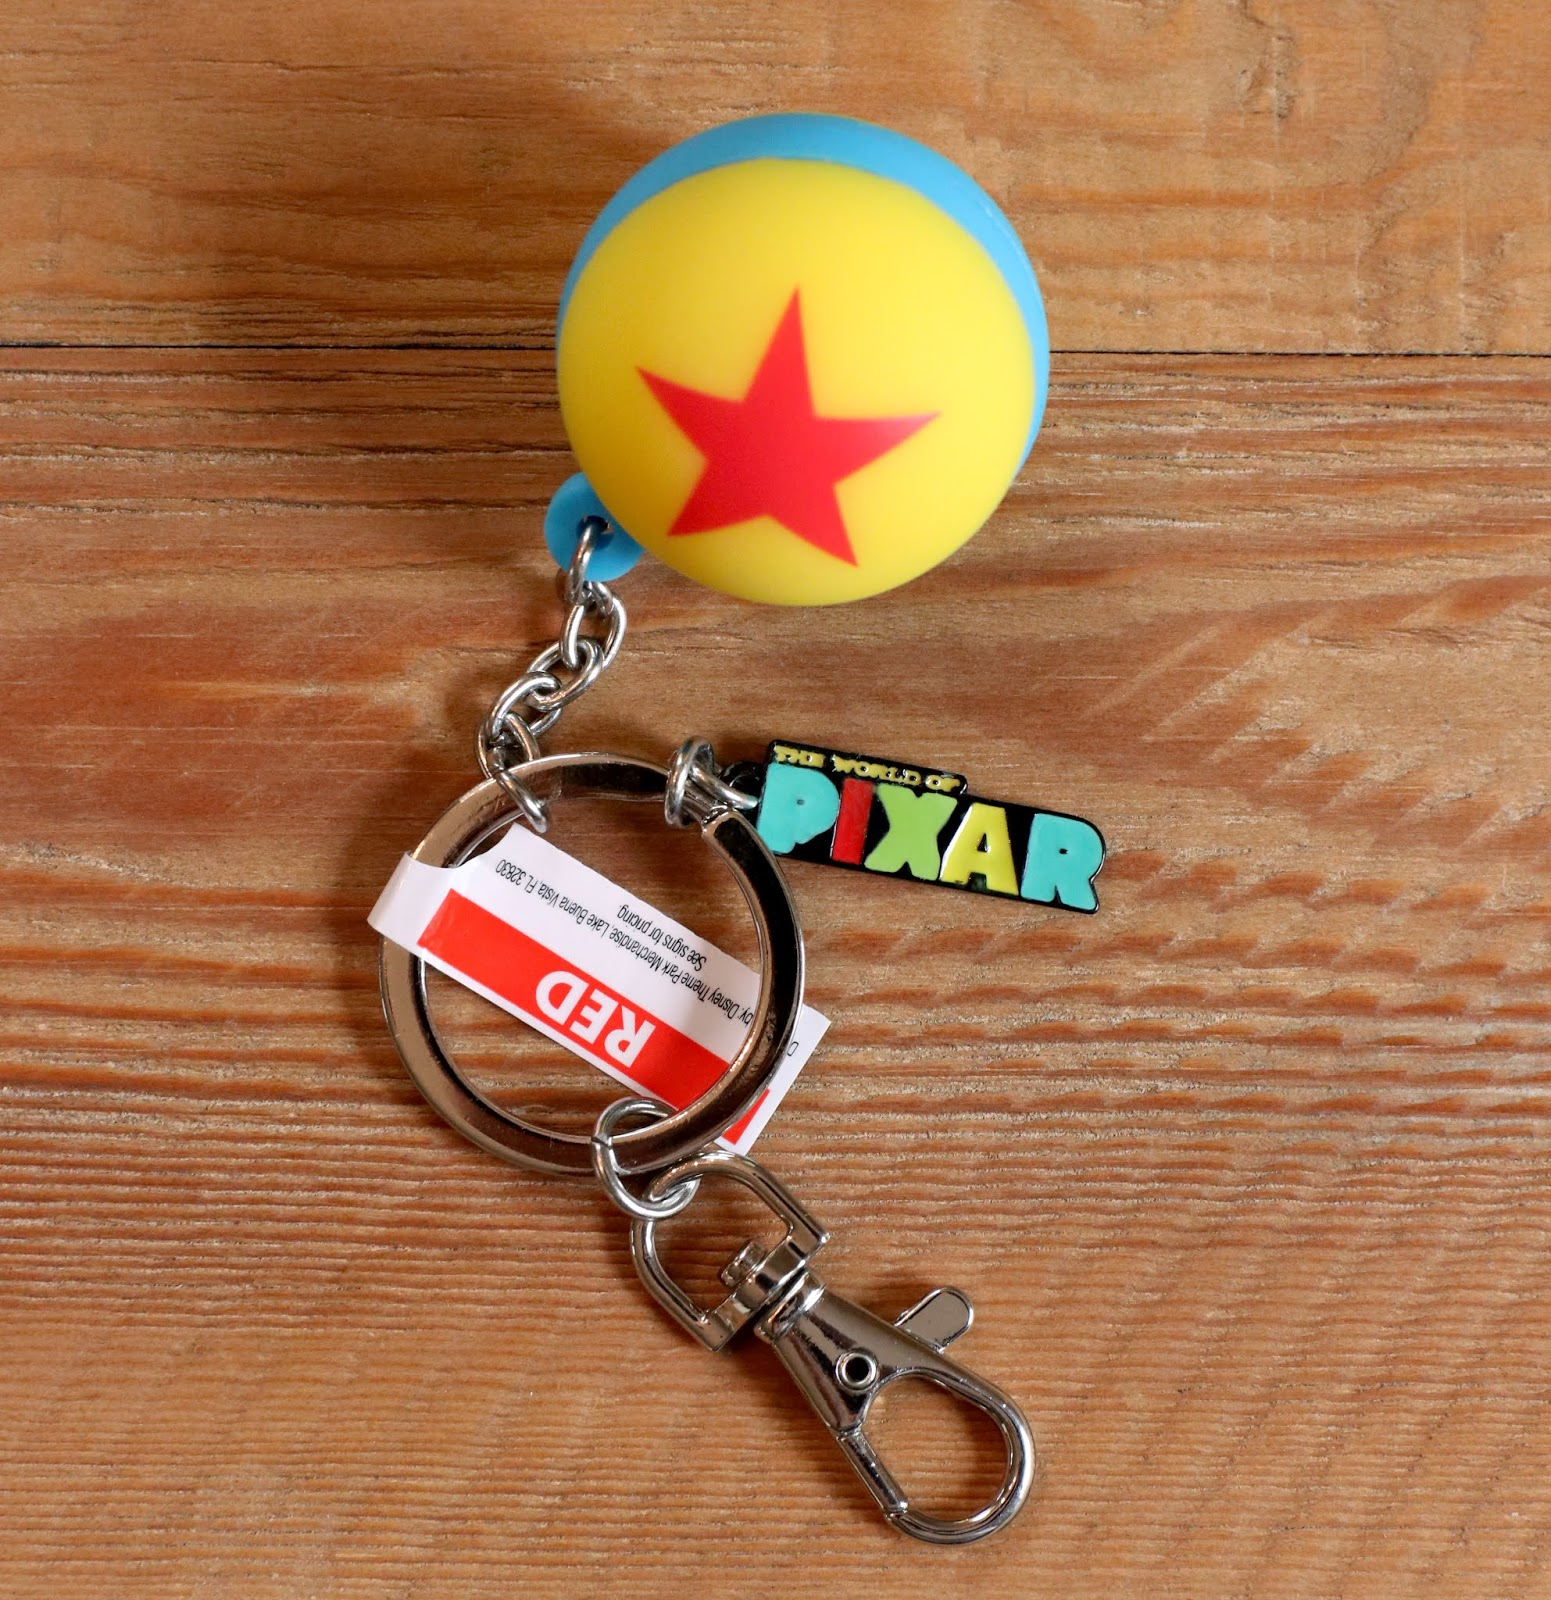 the world of pixar luxo ball keychain